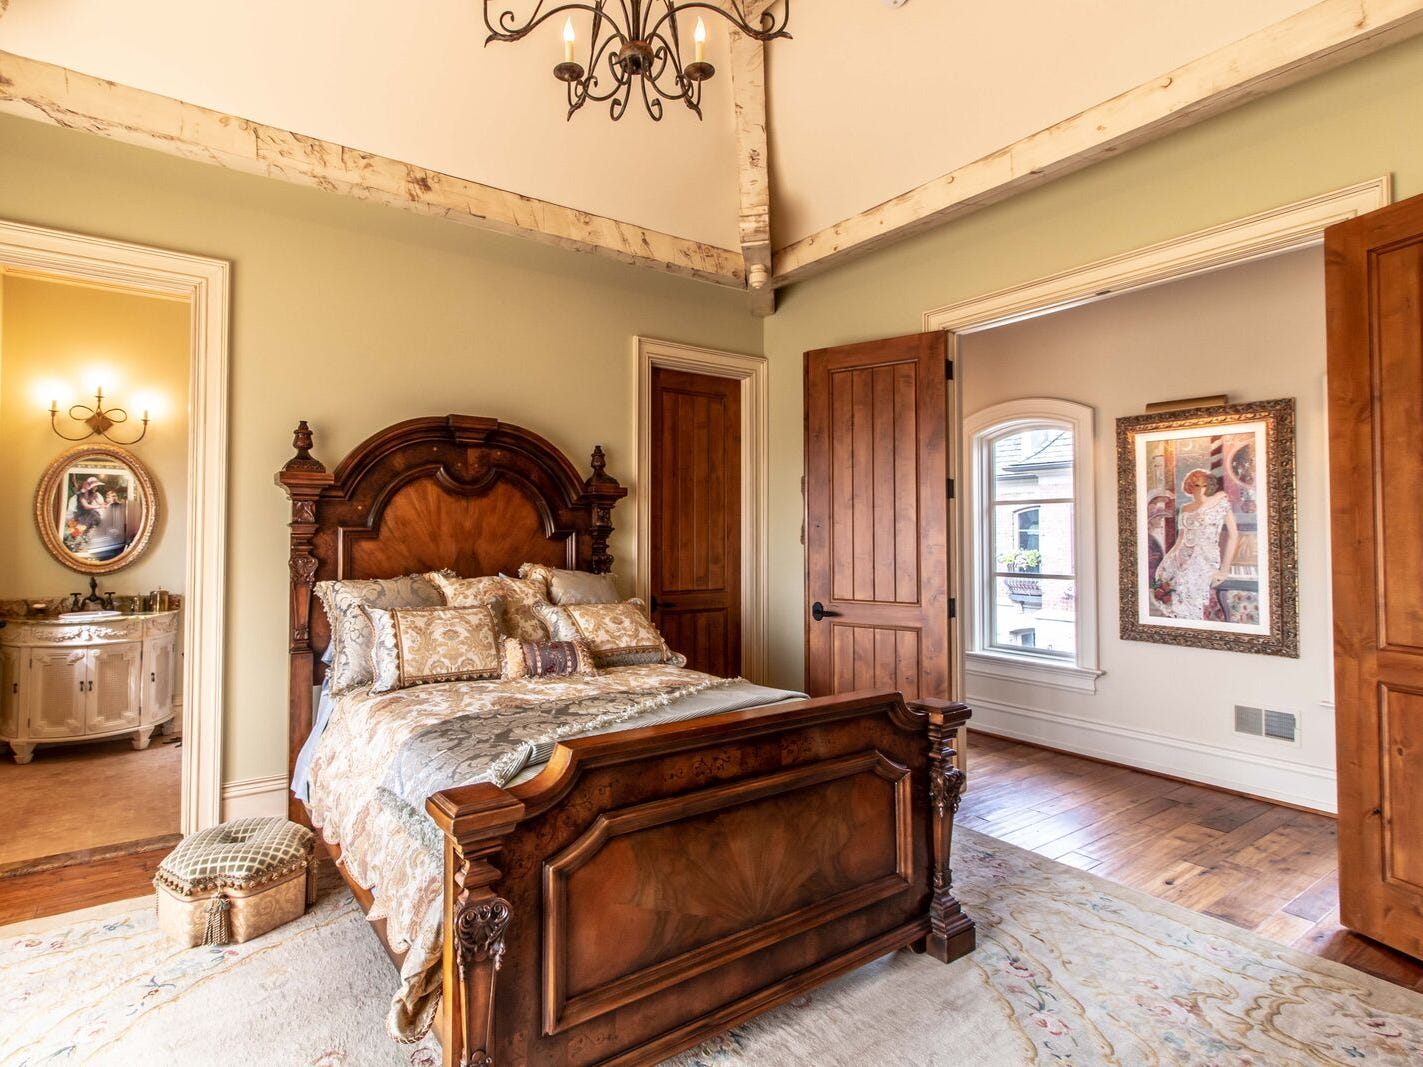 Another of the six bedrooms.